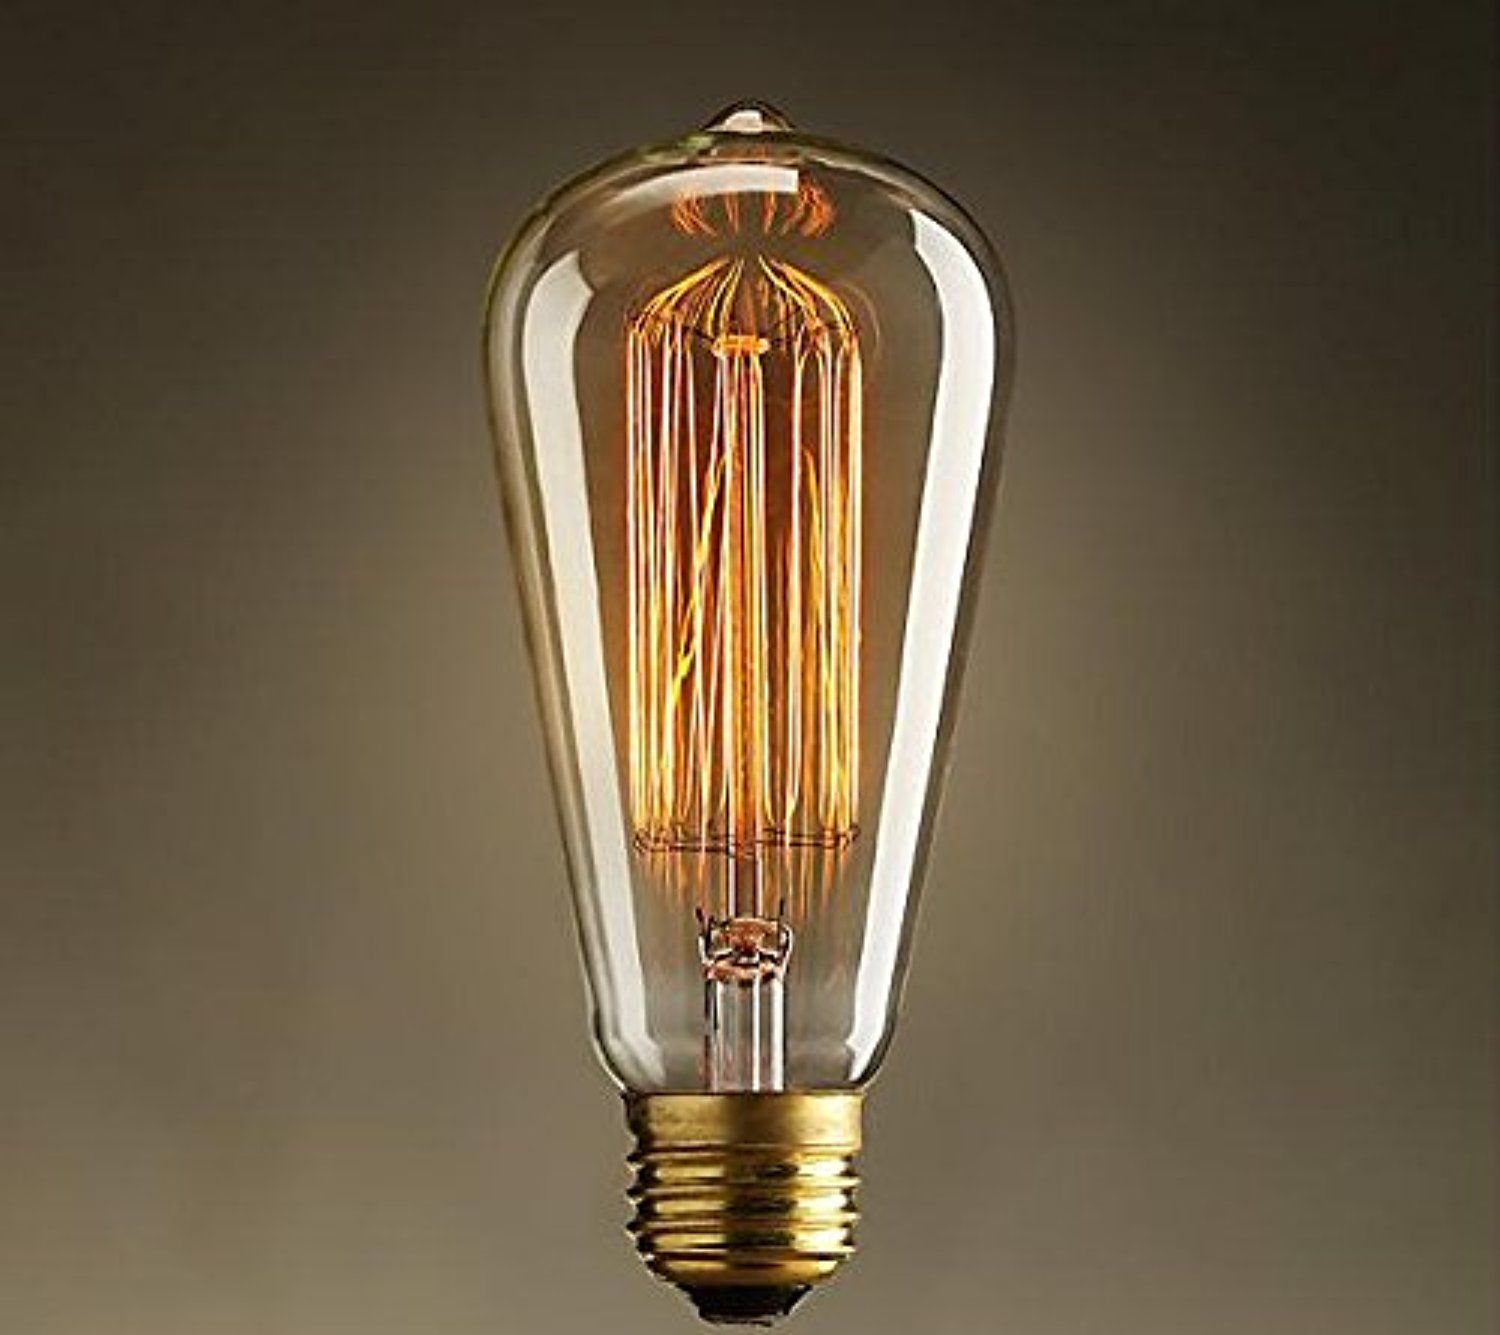 Edison vintage bulbs 60w antique incandescent glass light bulb edison vintage bulbs antique incandescent glass light bulb squirrel cage filament lamp for chandeliers wall sconces pendant lighting awesome products arubaitofo Gallery